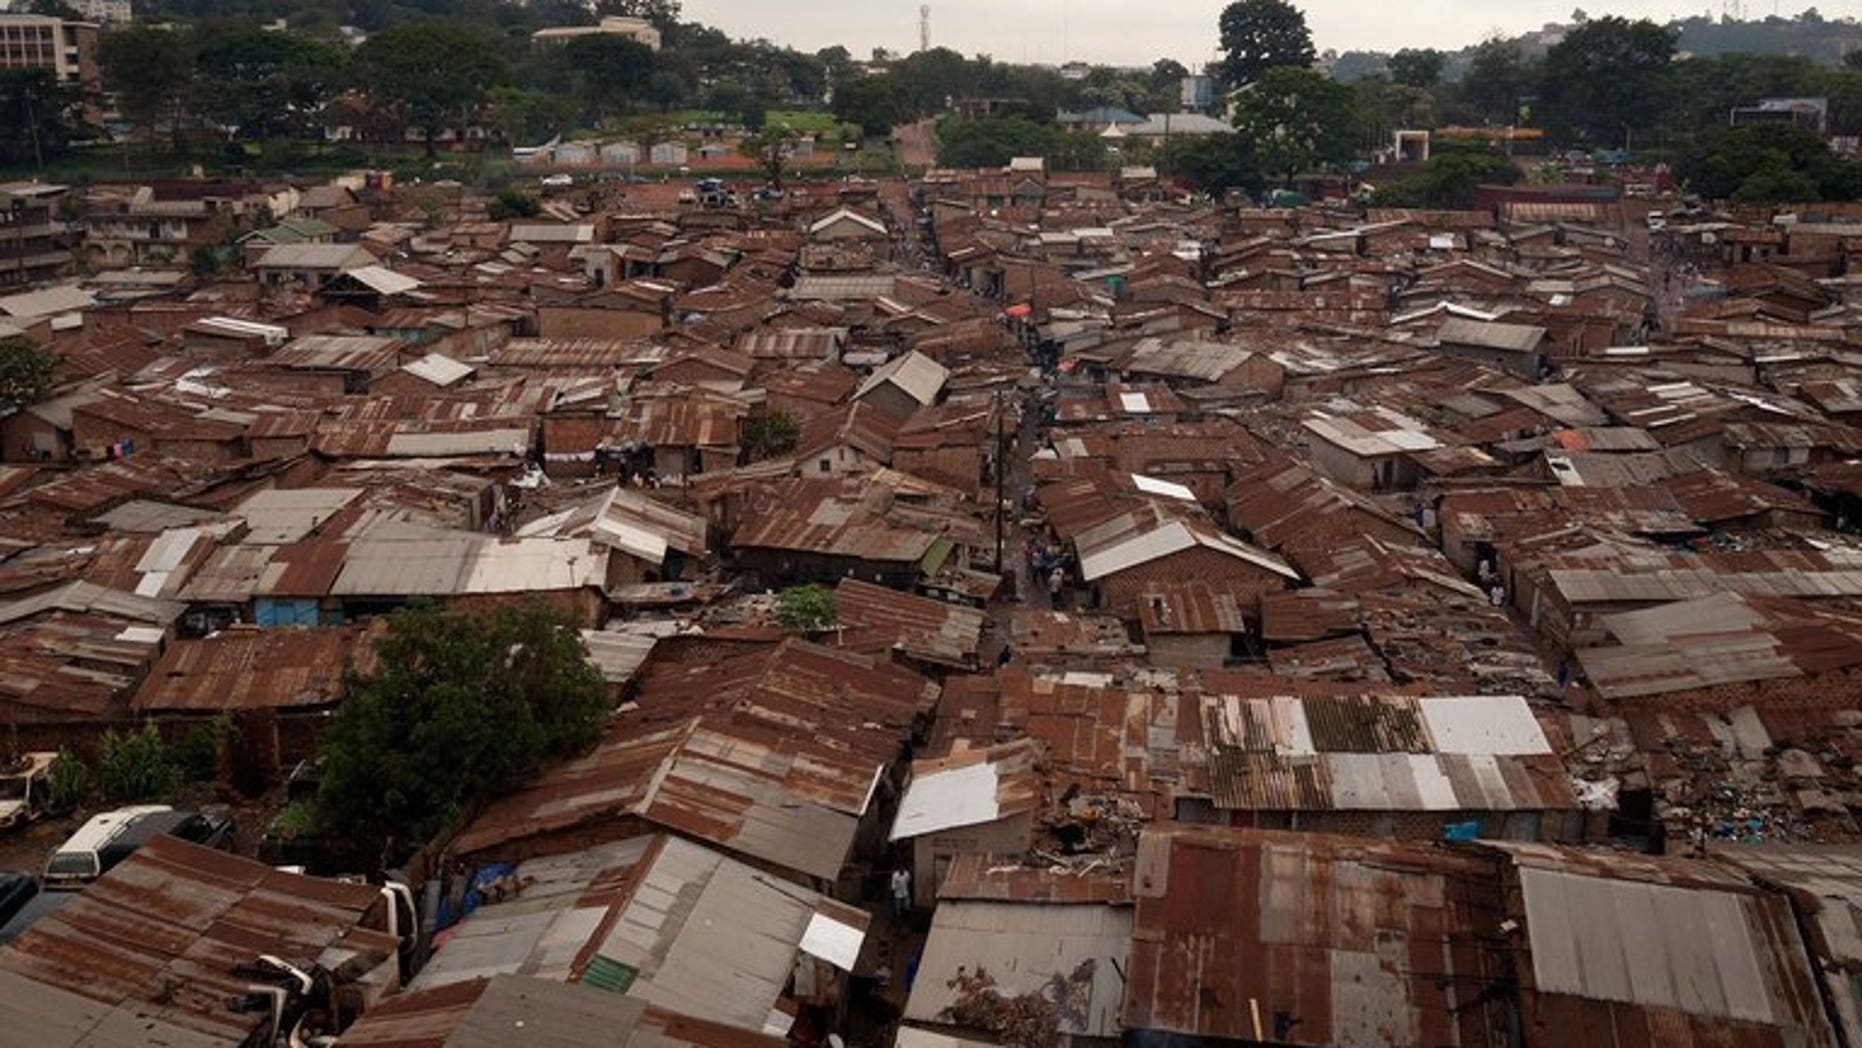 A general view of the Kataanga slum in the Ugandan capital, Kampala, on December 18, 2012. A Ugandan court has given a symbolic six-hour jail term to a teenage girl who killed her rapist father in a case that has drawn a wave of public sympathy.